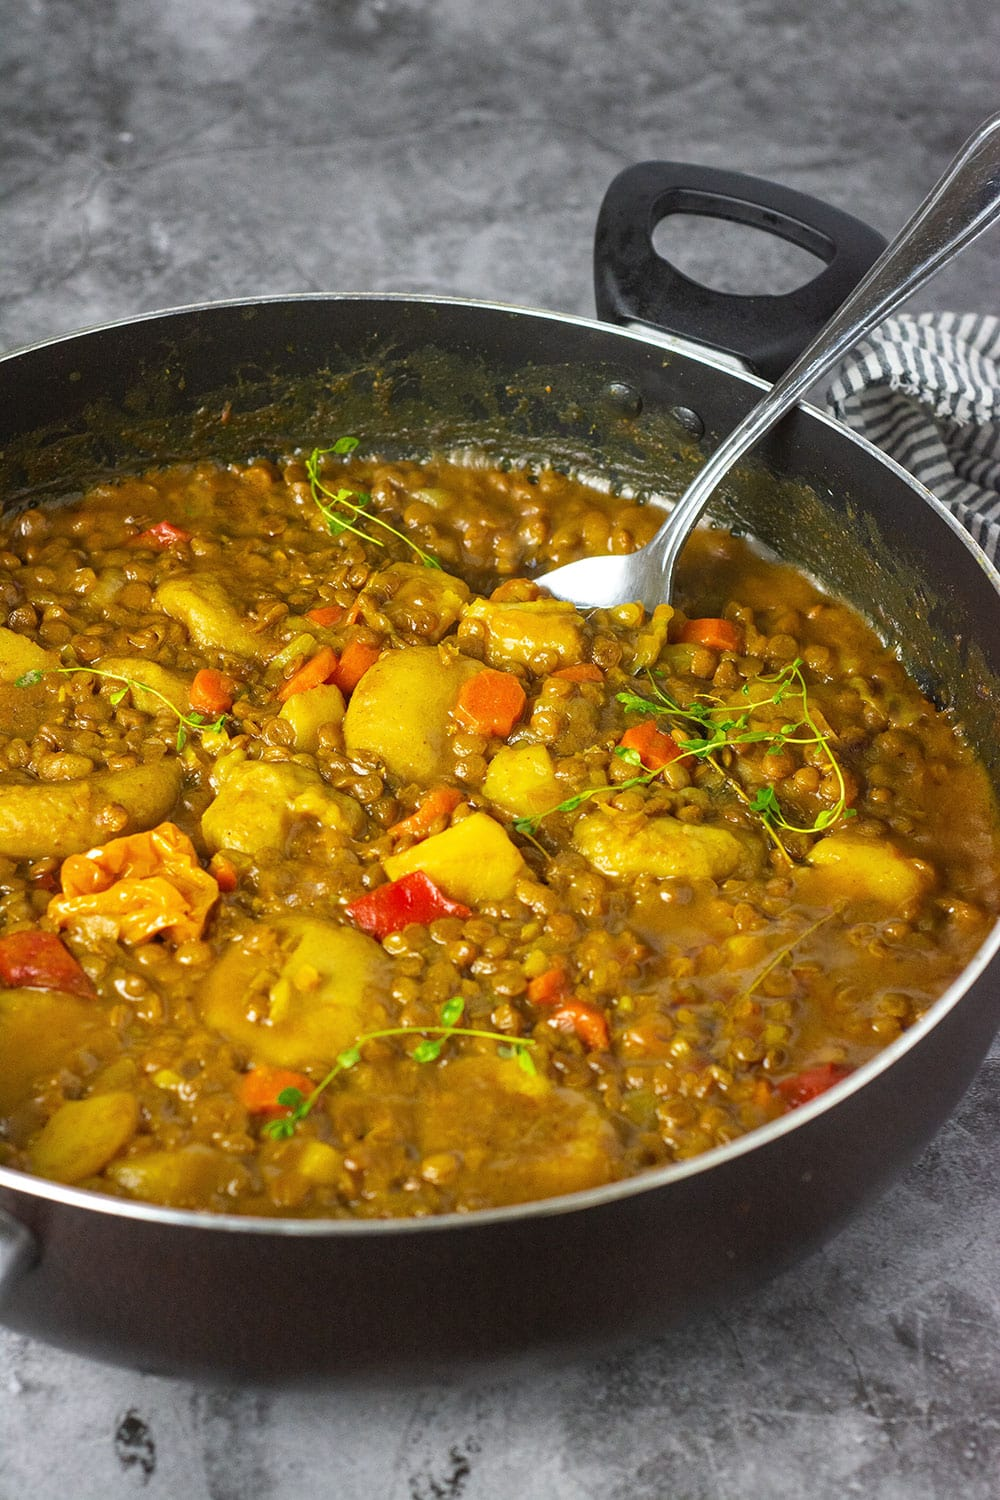 Straight on Creamy Jamaican coconut lentil curry, green lentils cooked in an aromatic coconut curry sauce, seasoned with onion, garlic, thyme, green onions, ginger, Scotch bonnet pepper and loaded with potato, carrot, and dumplings.